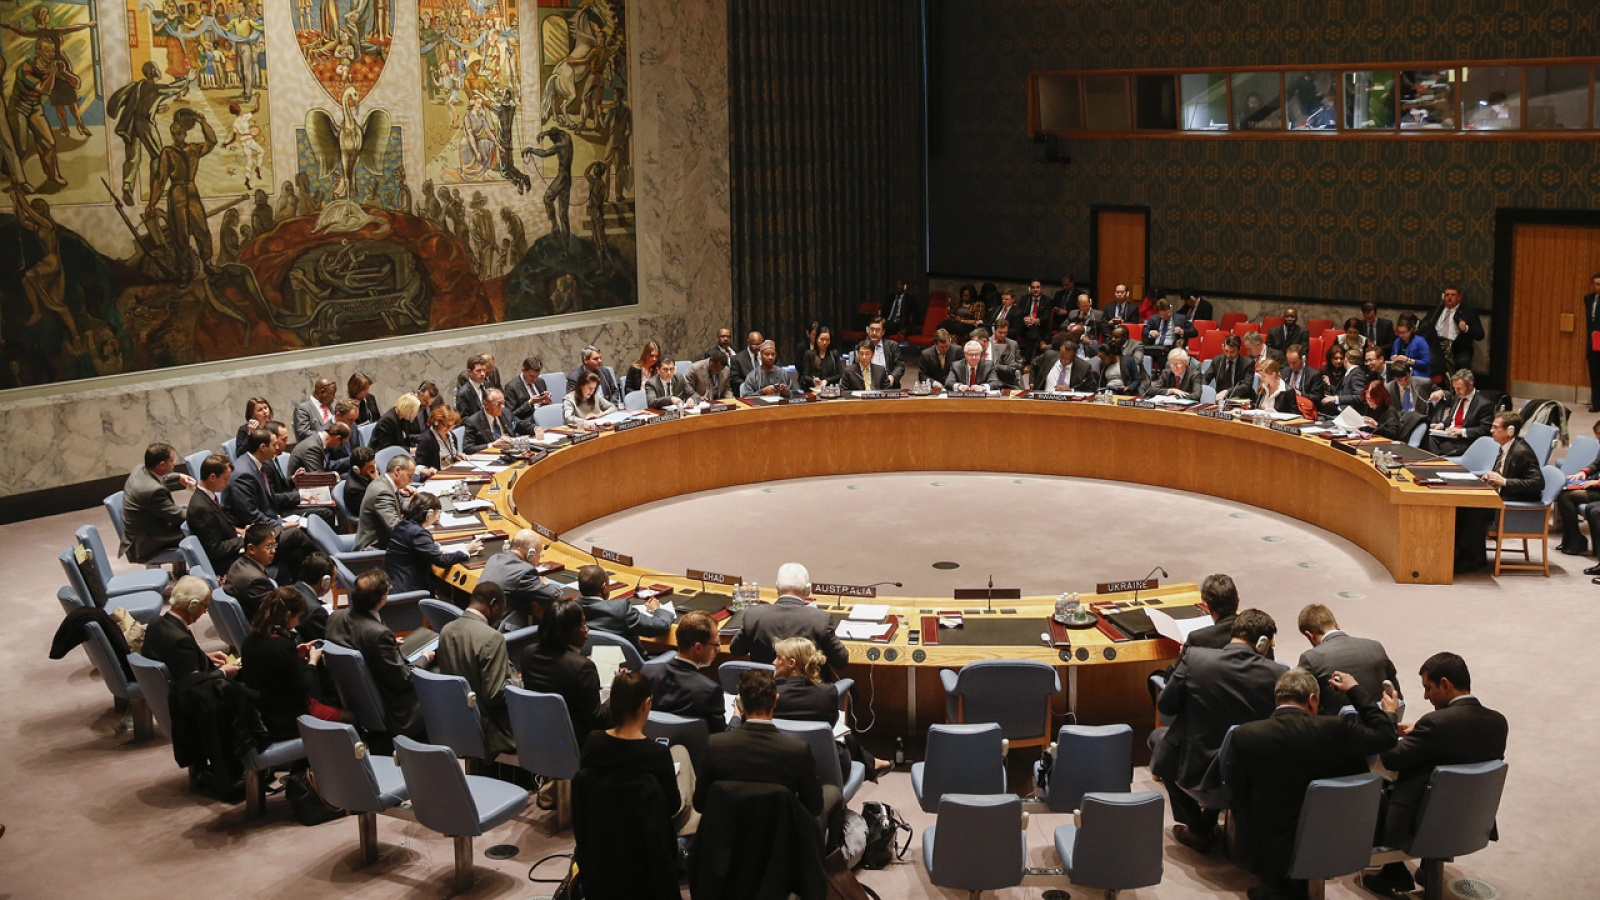 Policy beyond politics – The UN Security Council should urgently address Covid-19